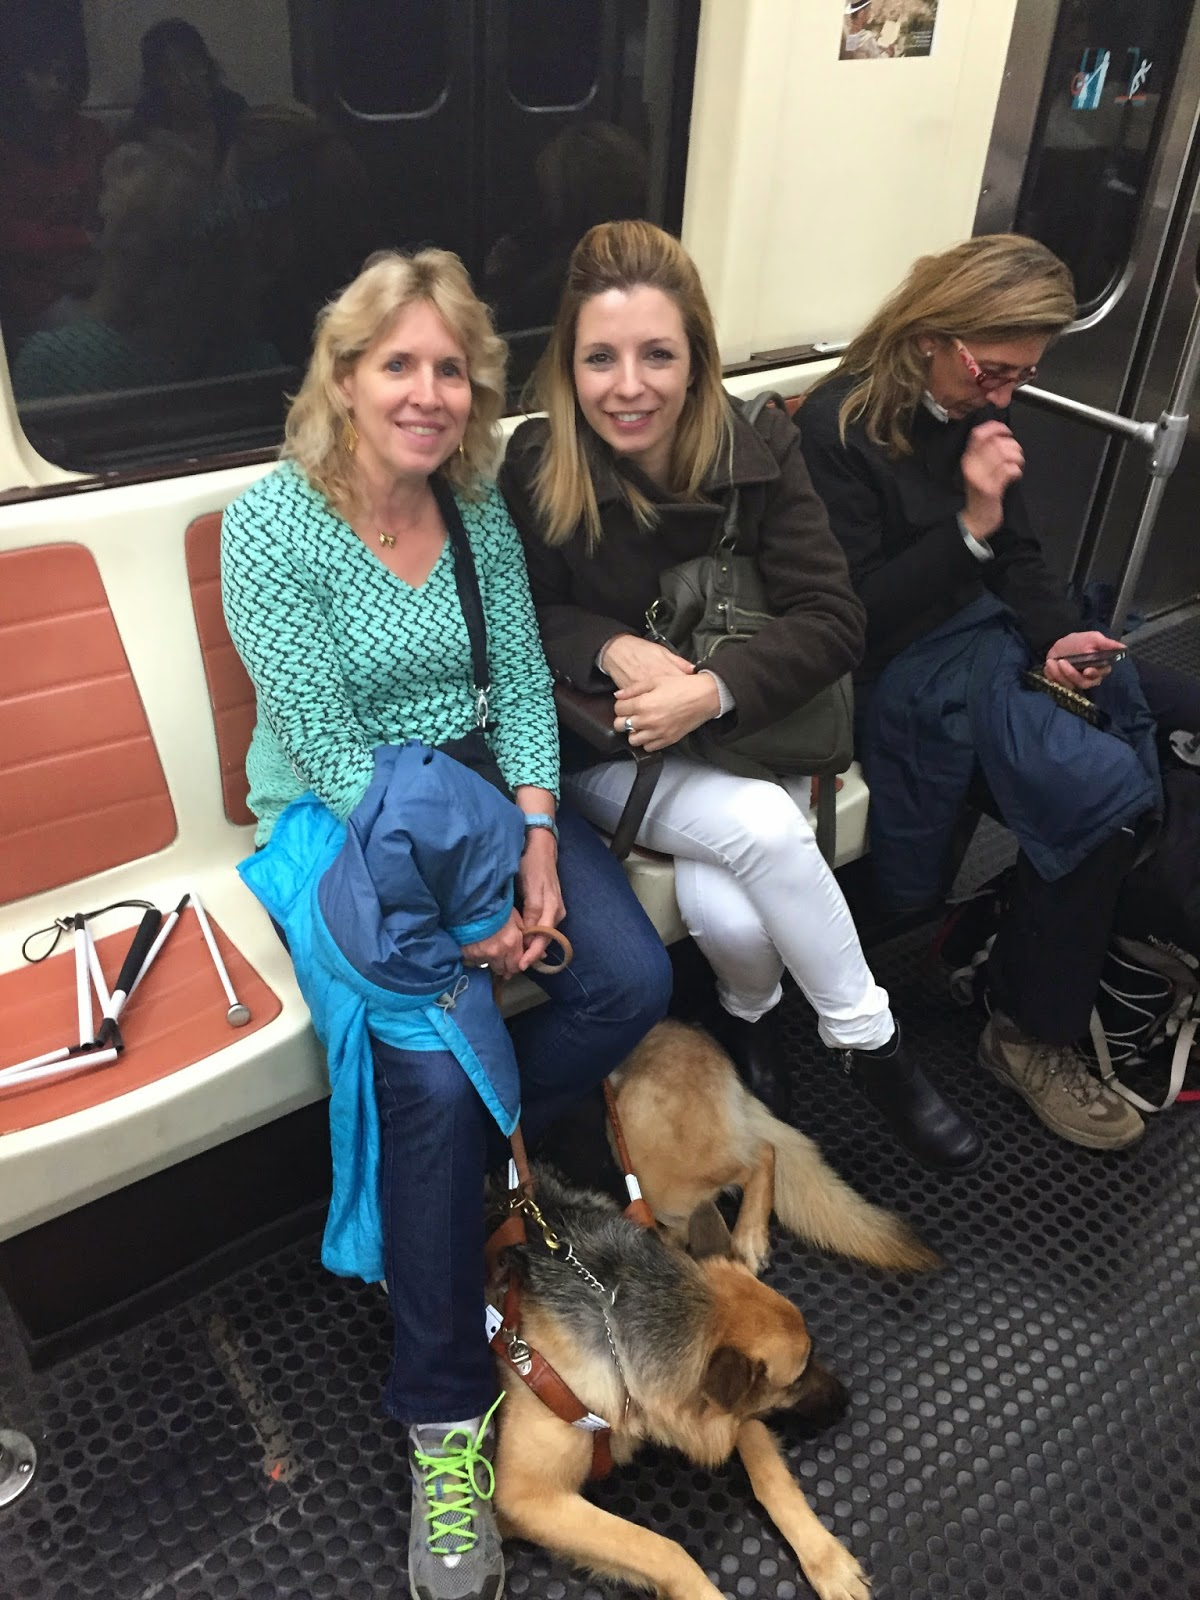 Gena and Alejandra on the subway in Madrid